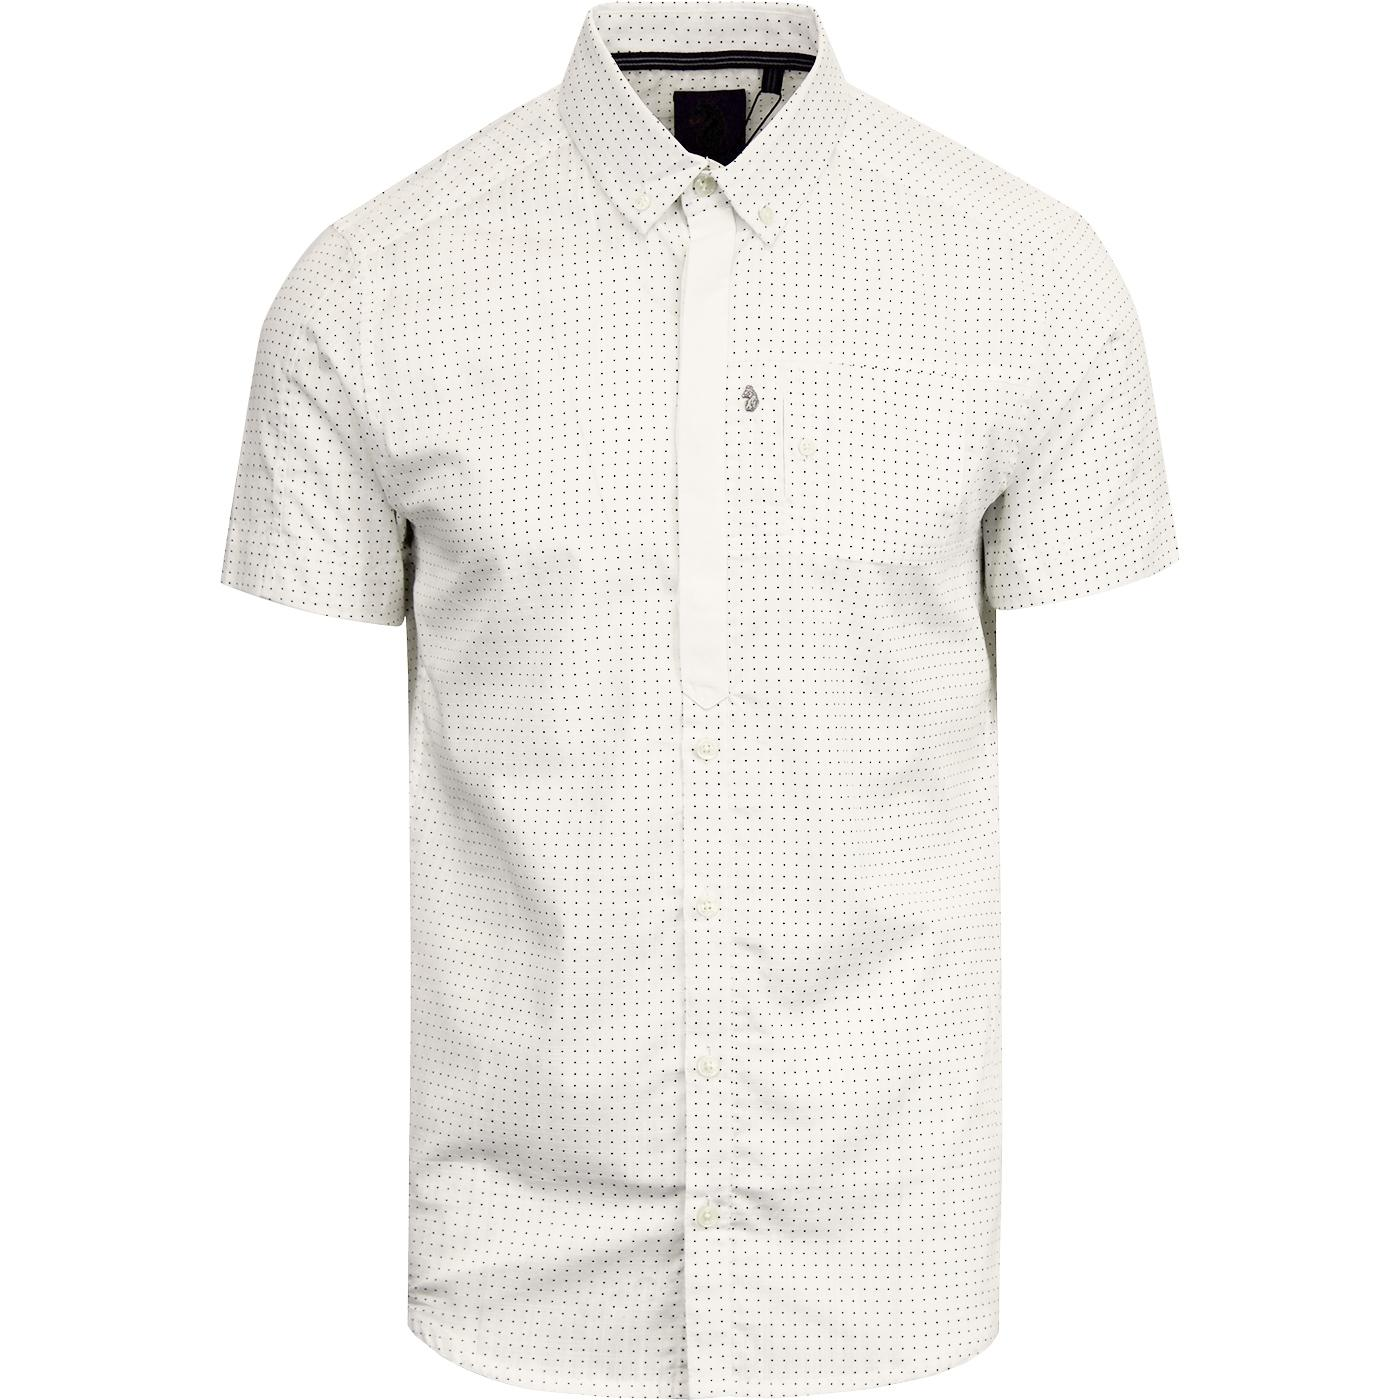 Wockneys Pencil 2 LUKE Slim Fit Polka Dot Shirt C